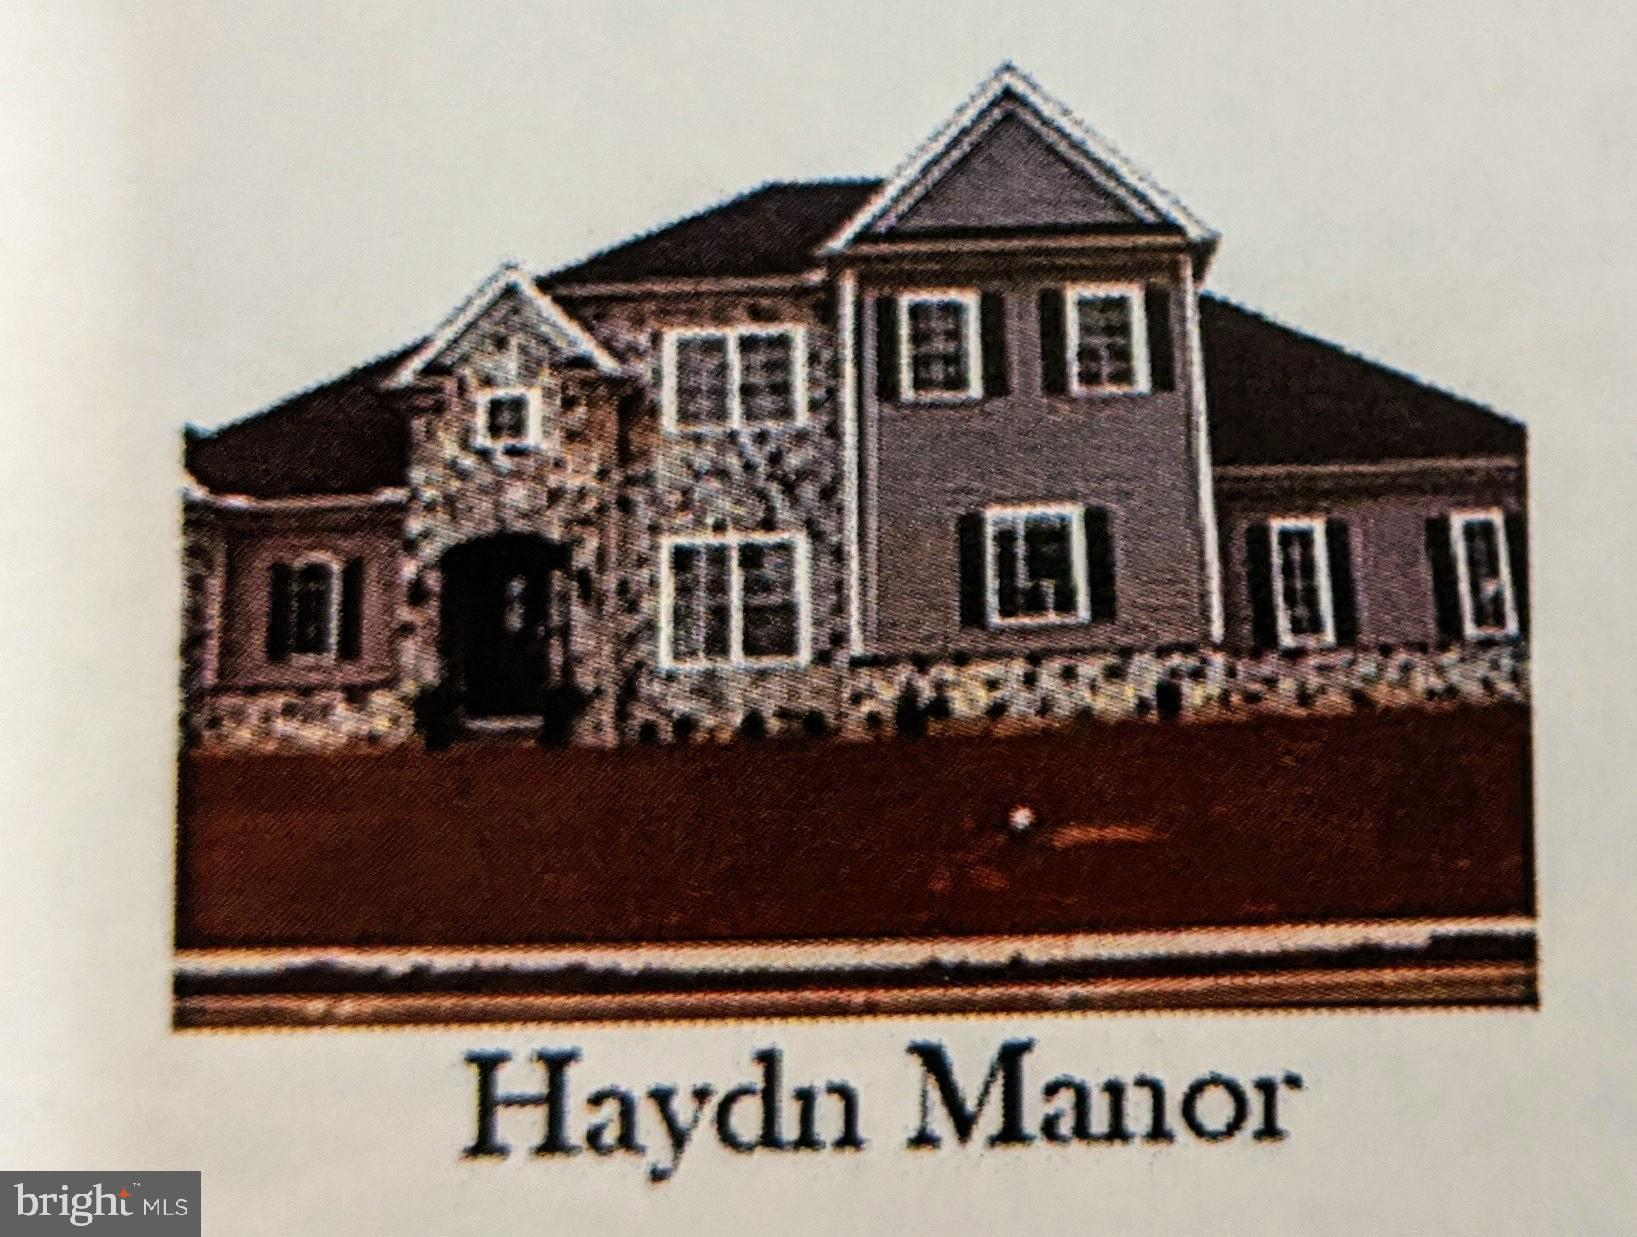 VISIT OUR SALES CENTER @HAYDN MANOR*TO BE BUILT HOME* Lot Prices $115,000-$135,000* Custom build your Dream Home*